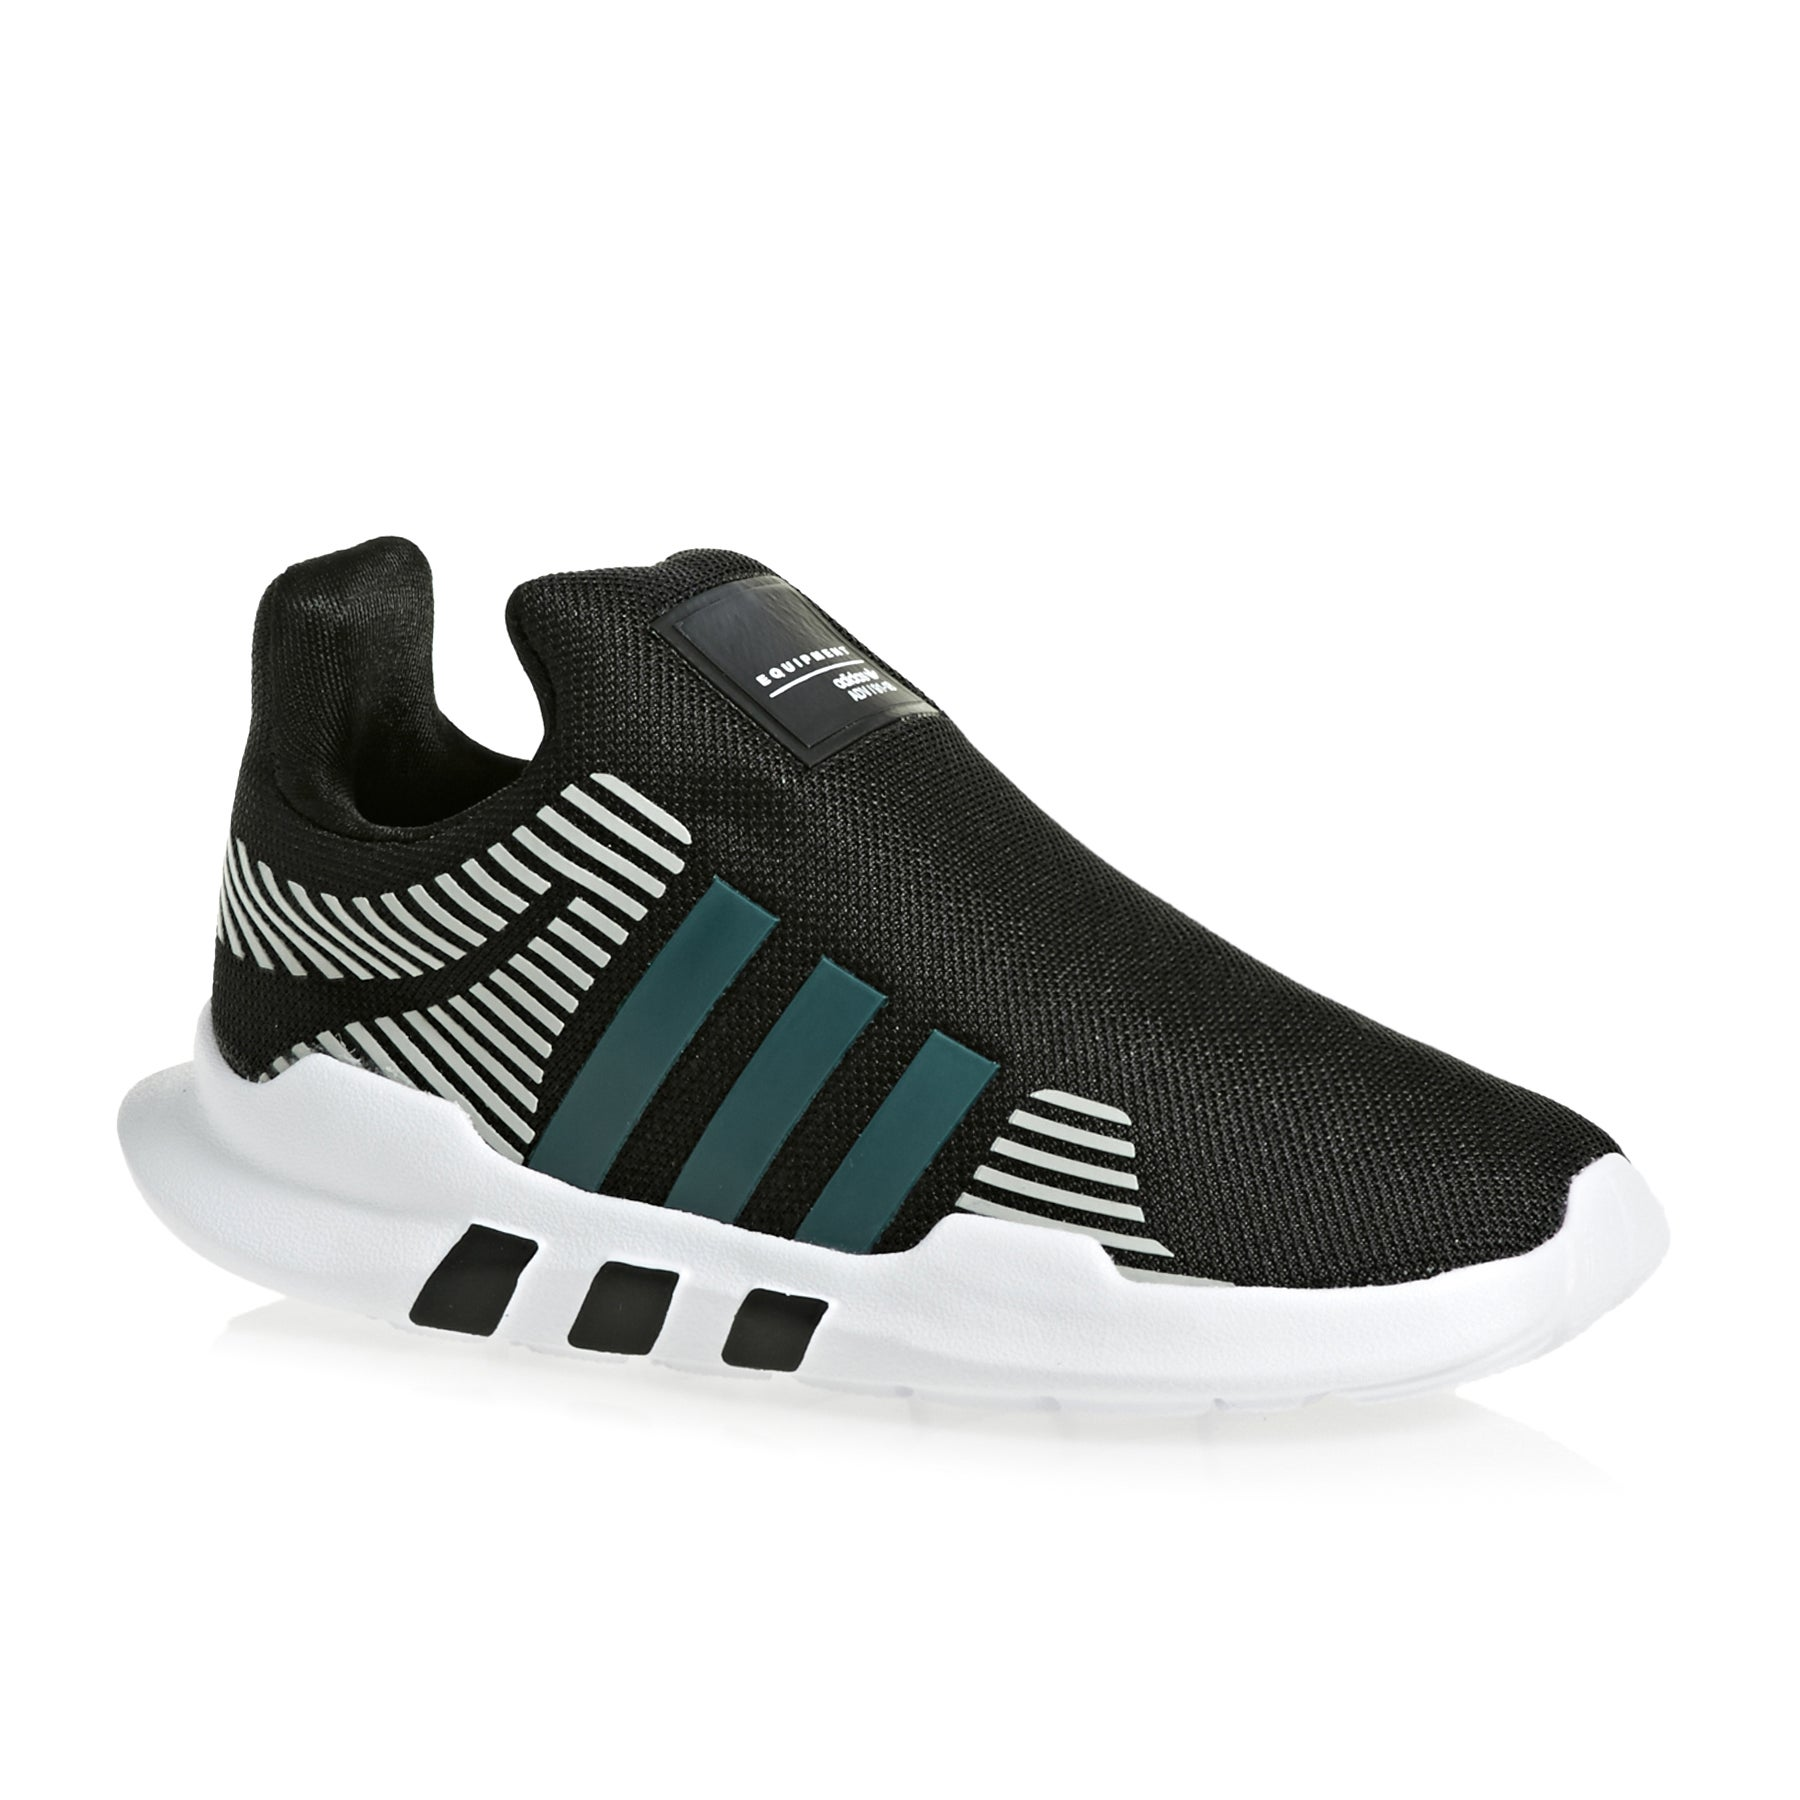 big sale 8e6ca 3a390 Adidas Originals EQT Adv 360 Boys Shoes | Free Delivery Options